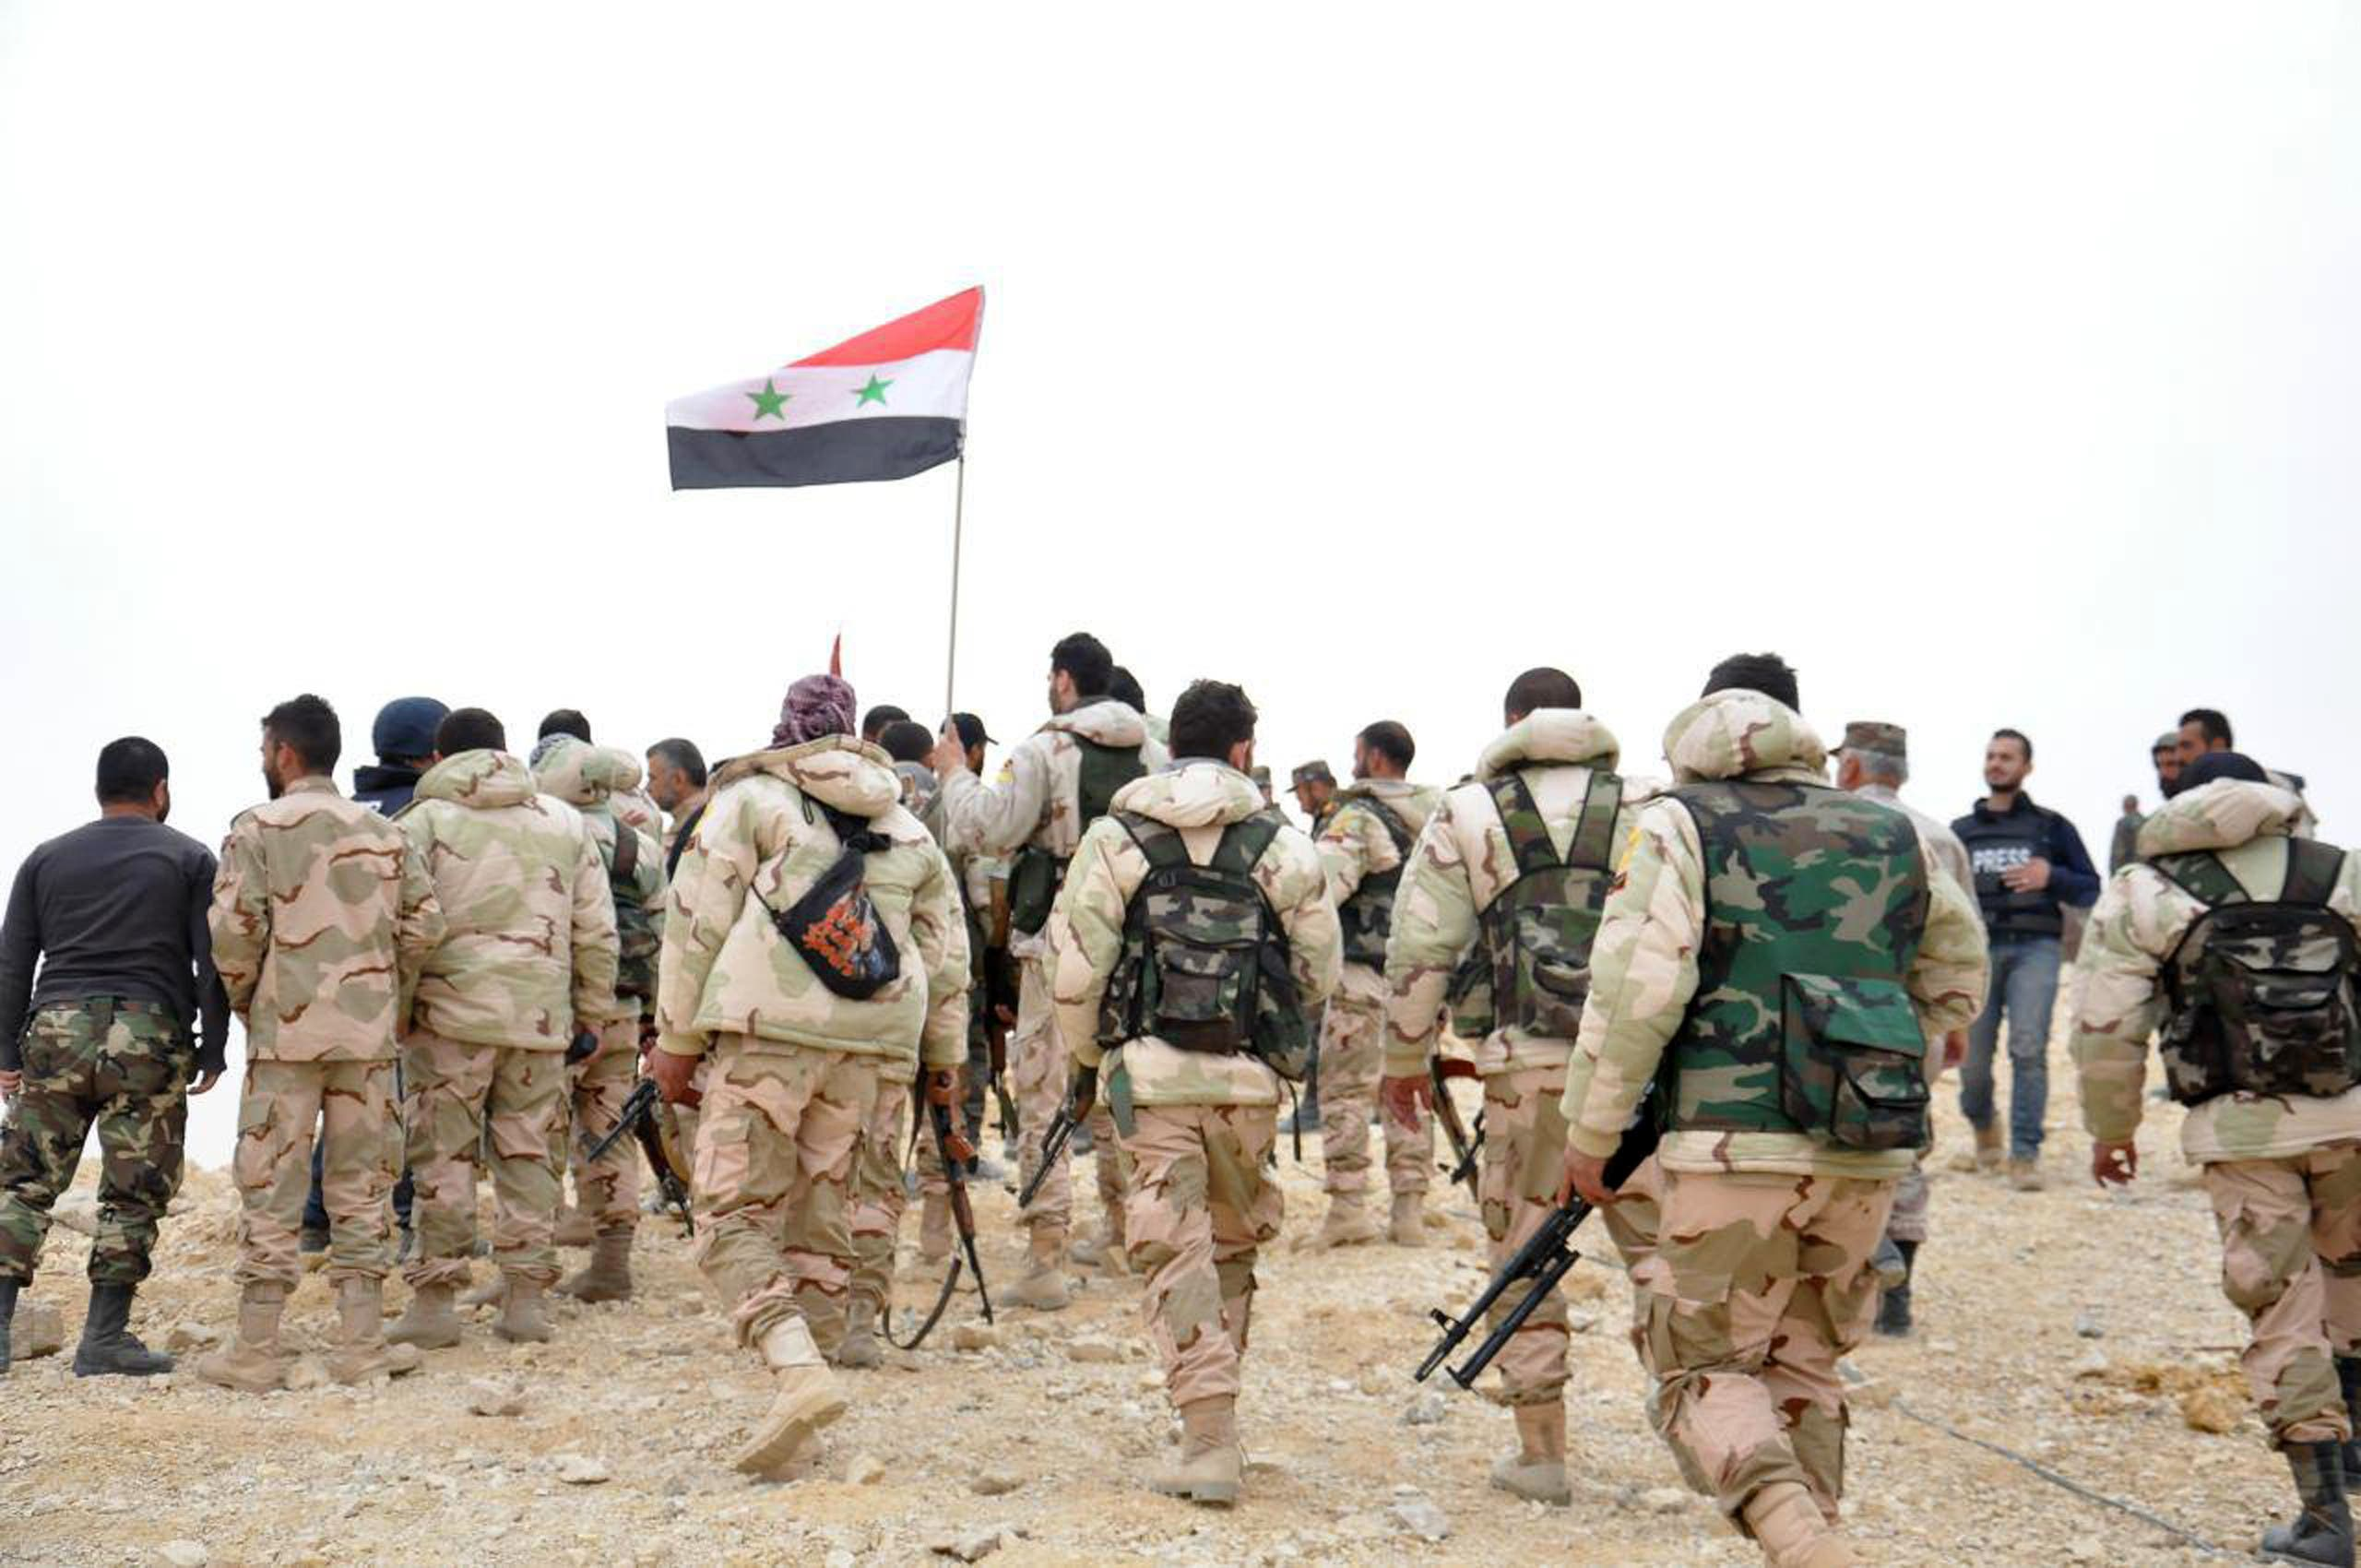 In this photo released by the Syrian official news agency SANA, Syrian soldiers gather around a Syrian national flag in Palmyra, Syria, Sunday, March 27, 2016. (AP)